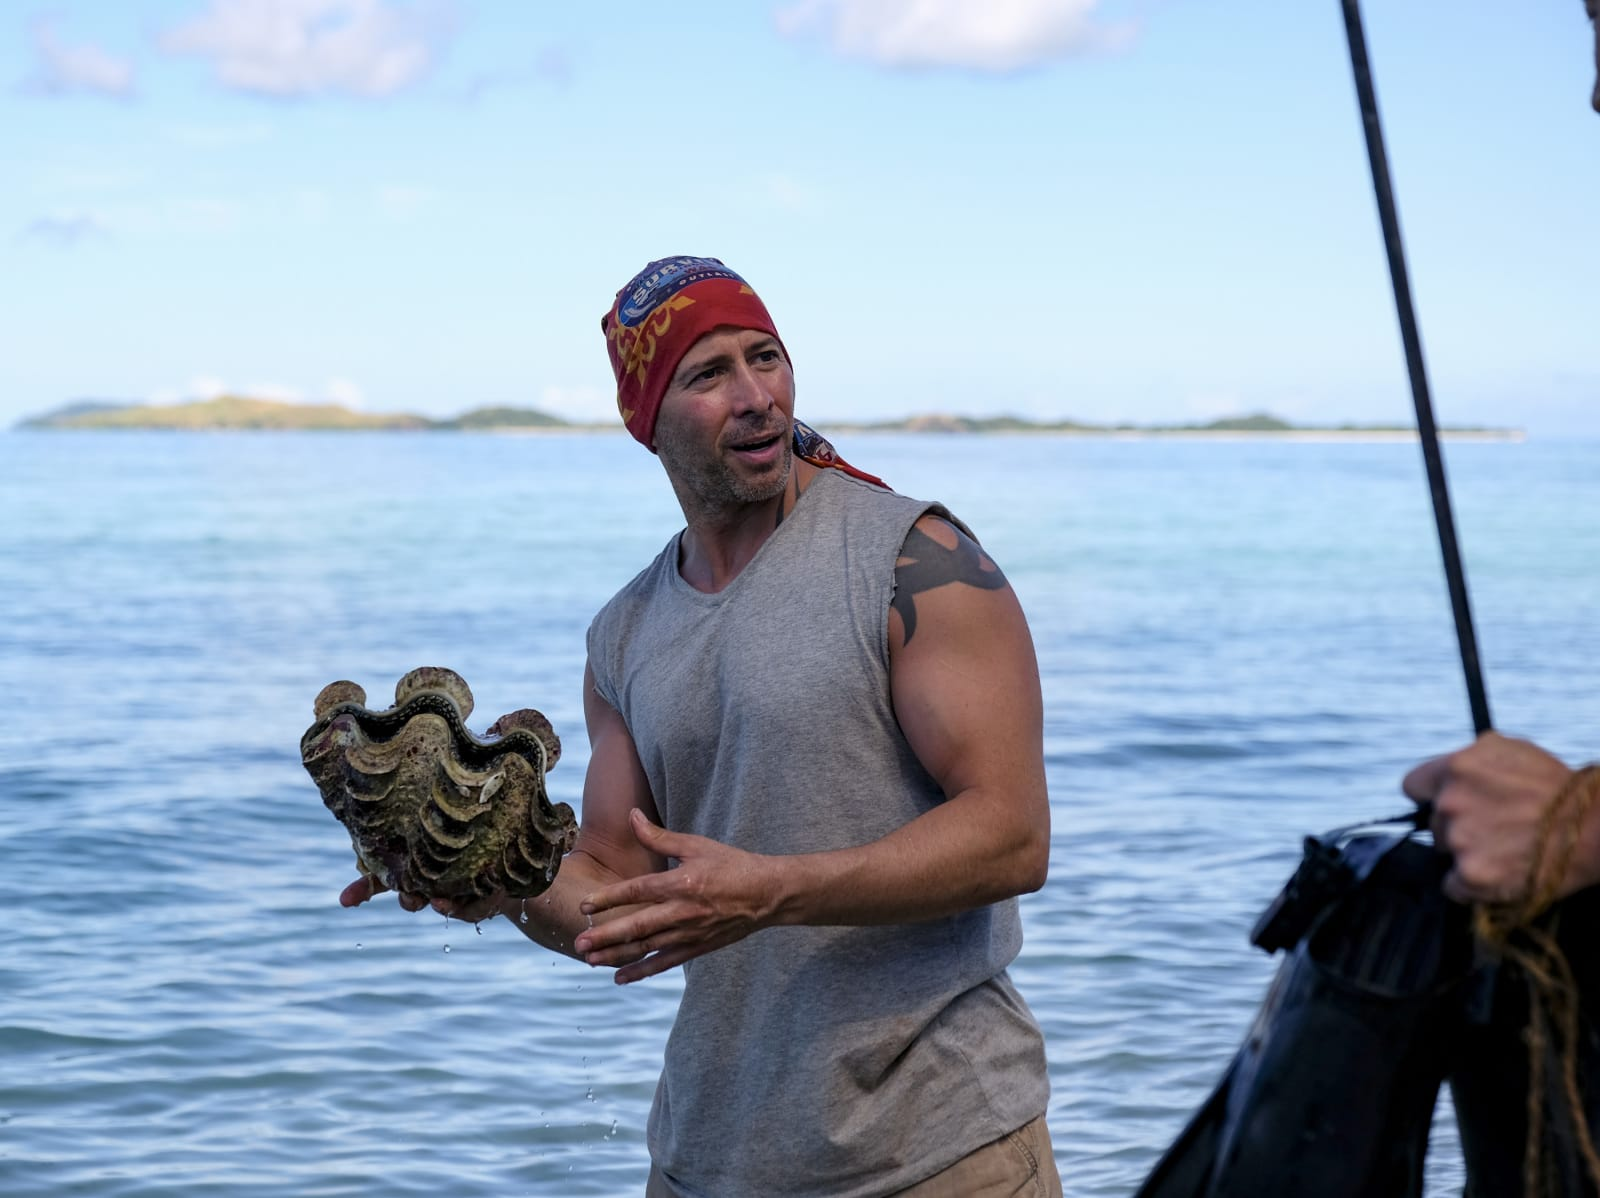 Tony Vlachos clamming Survivor Winners at War episode 2